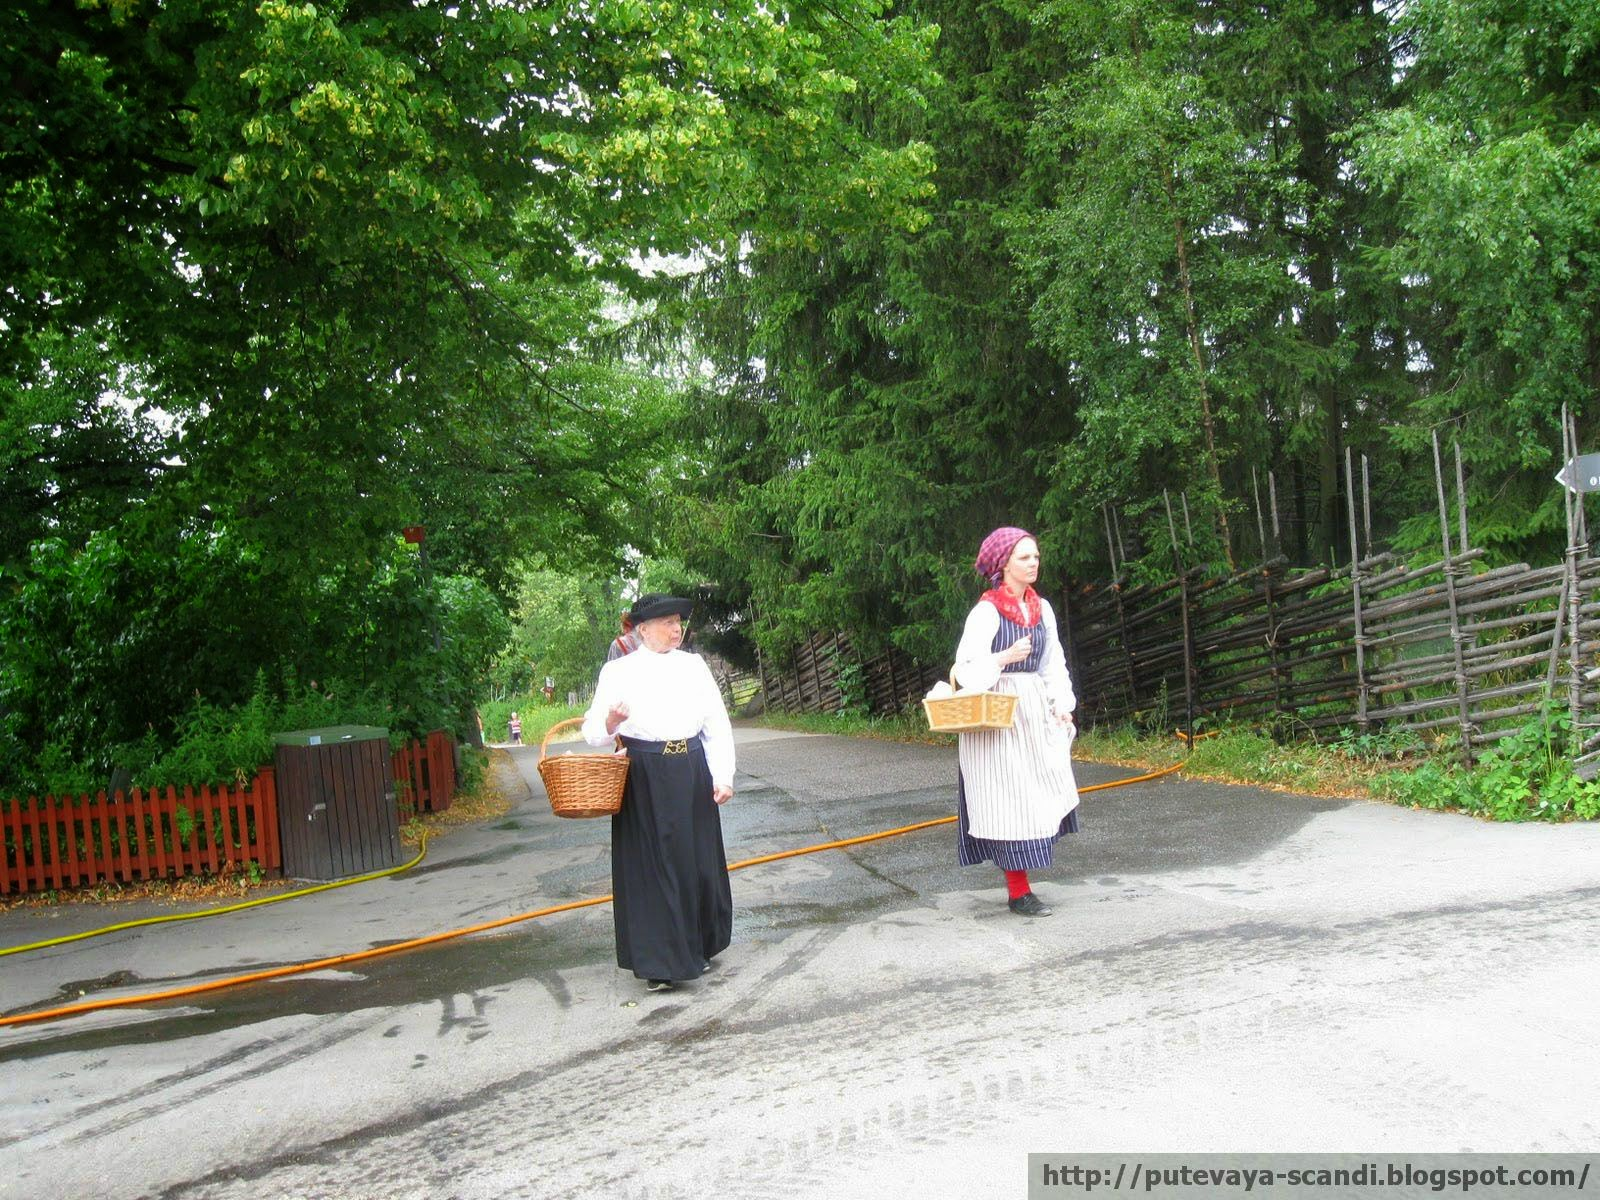 ladies in traditional Swedish costumes